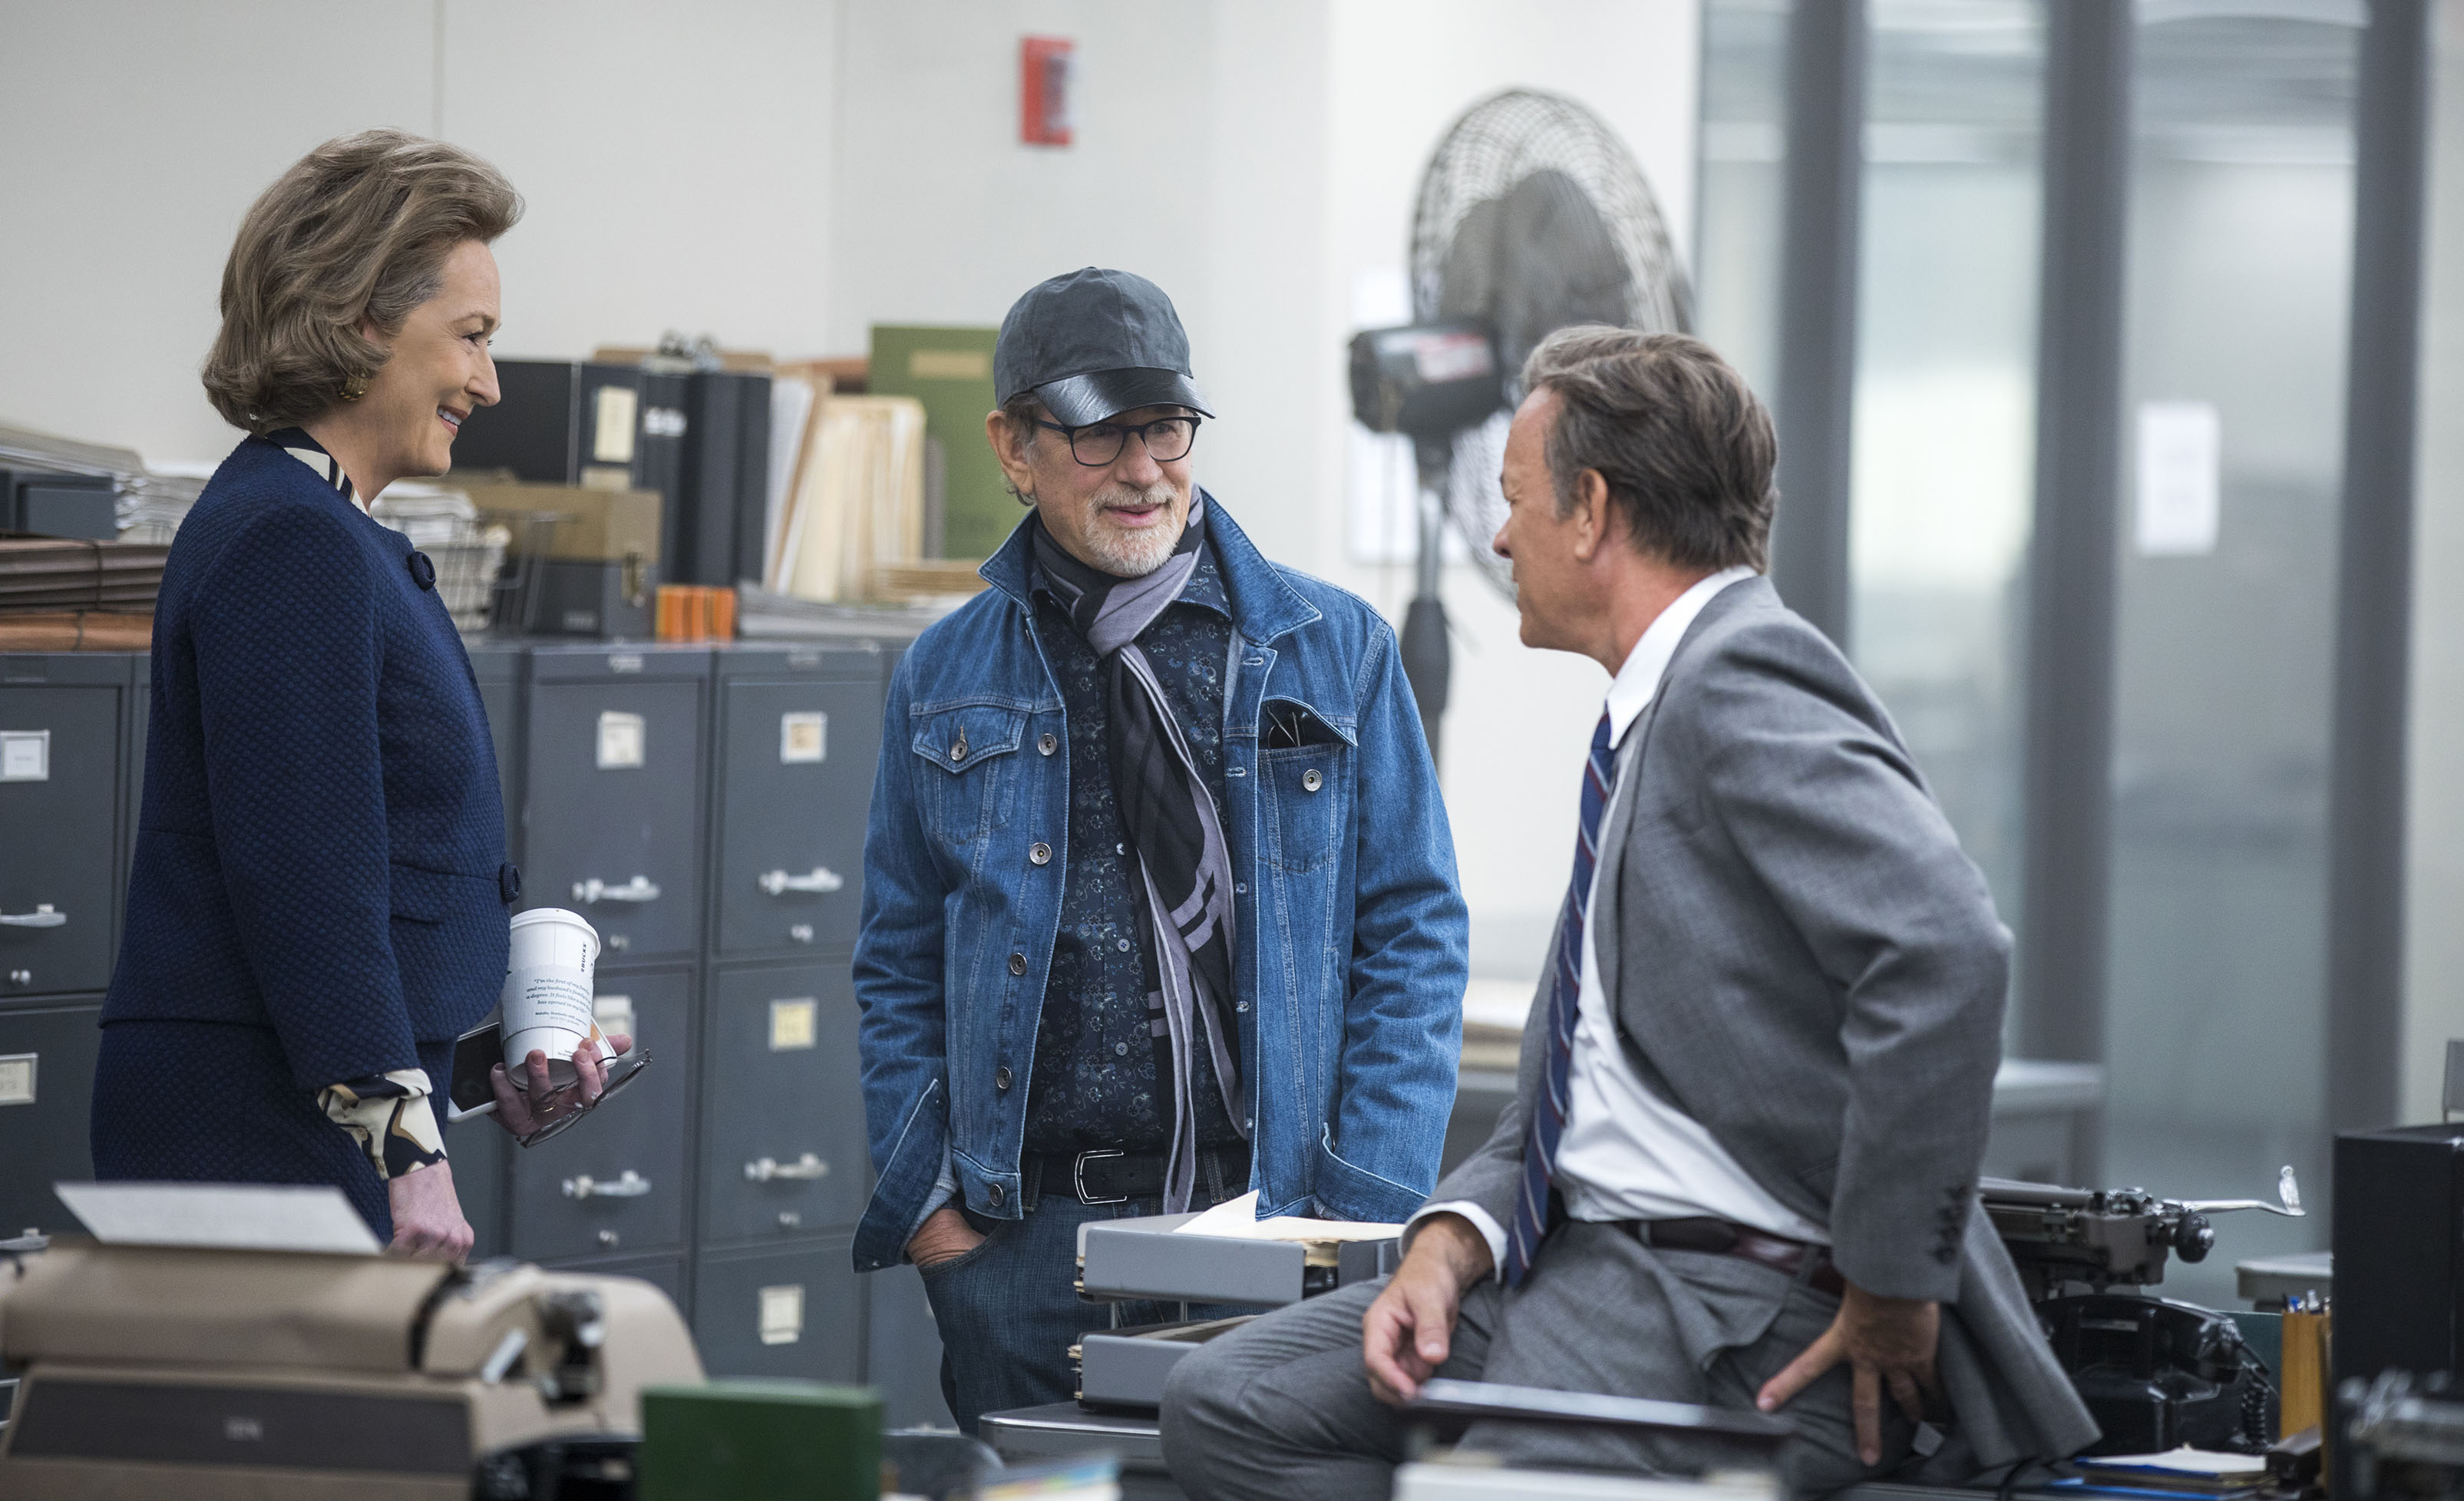 NOR_D00_052317_7961_R – Meryl Streep, Director Steven Spielberg, and Tom Hanks on the set of THE POST. Photo Credit: Niko Tavernise.